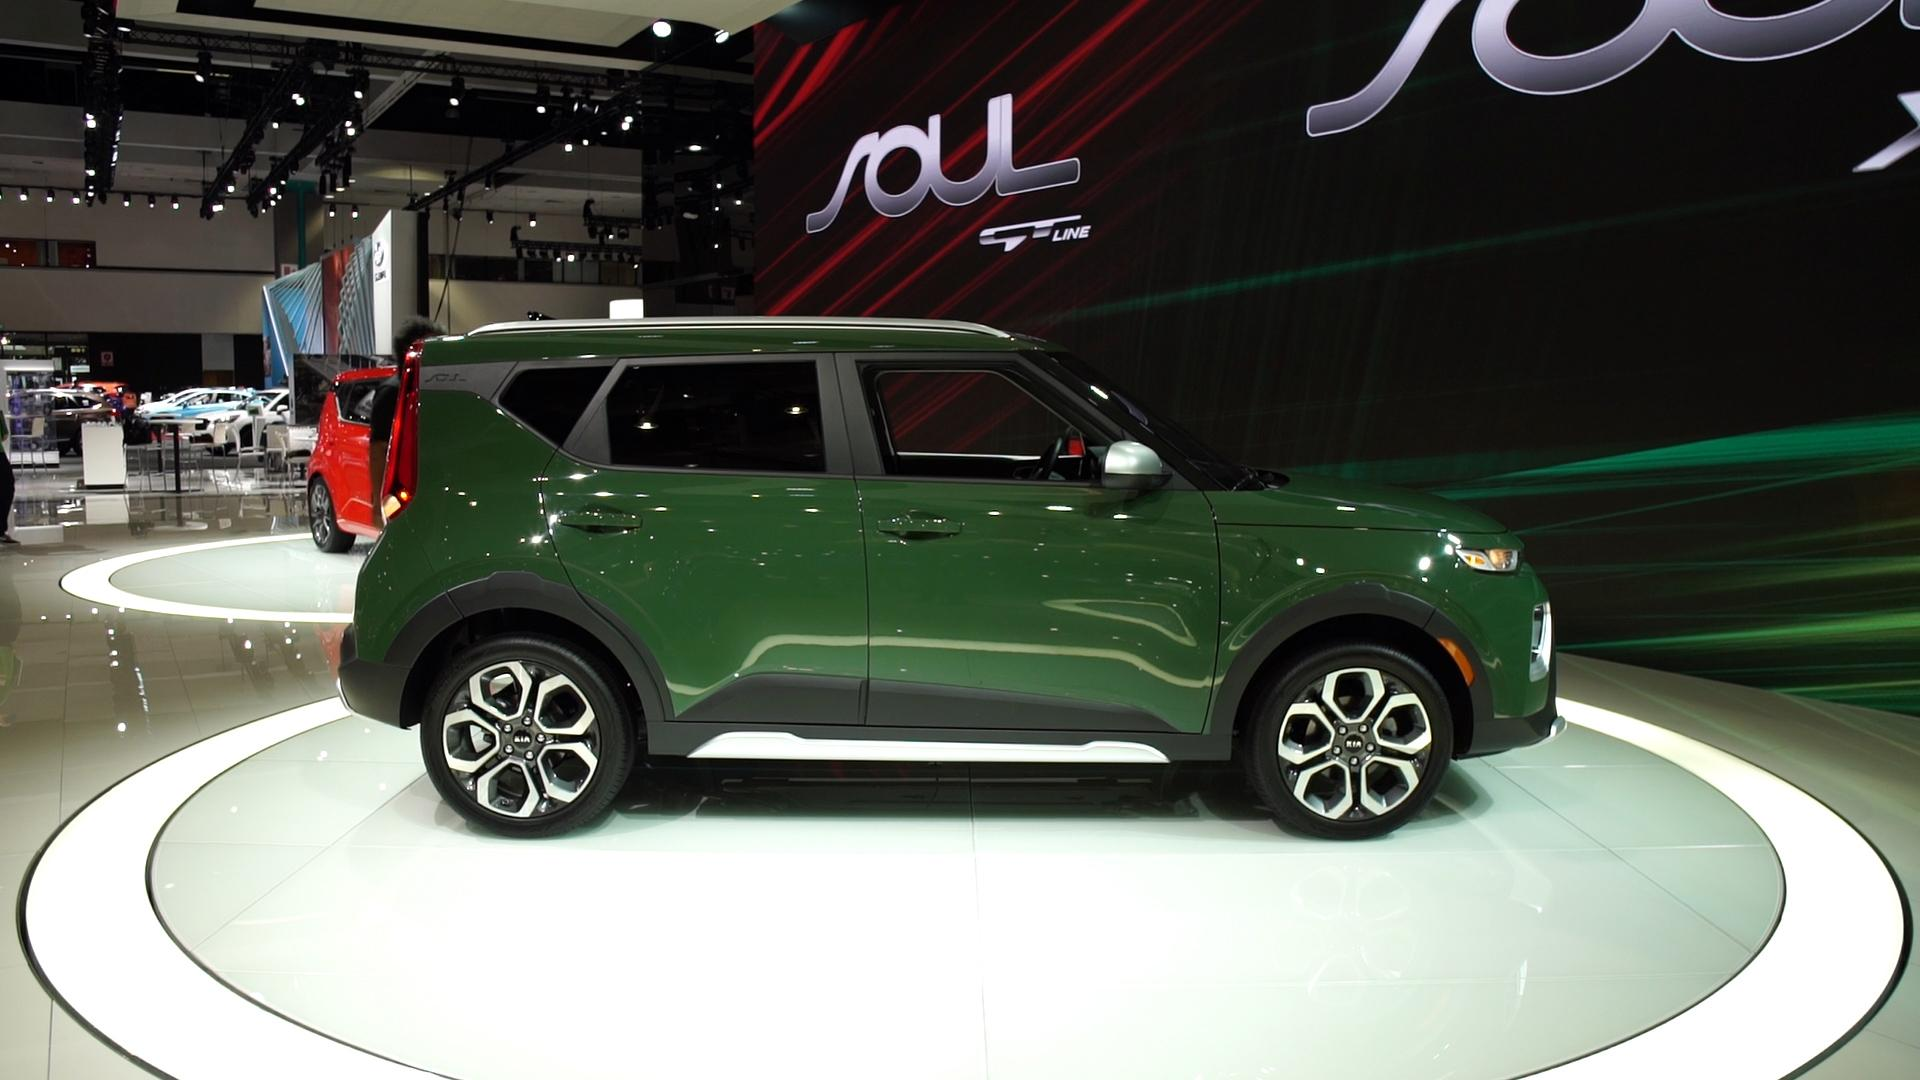 91 Best Review 2020 Kia Soul Brochure History with 2020 Kia Soul Brochure